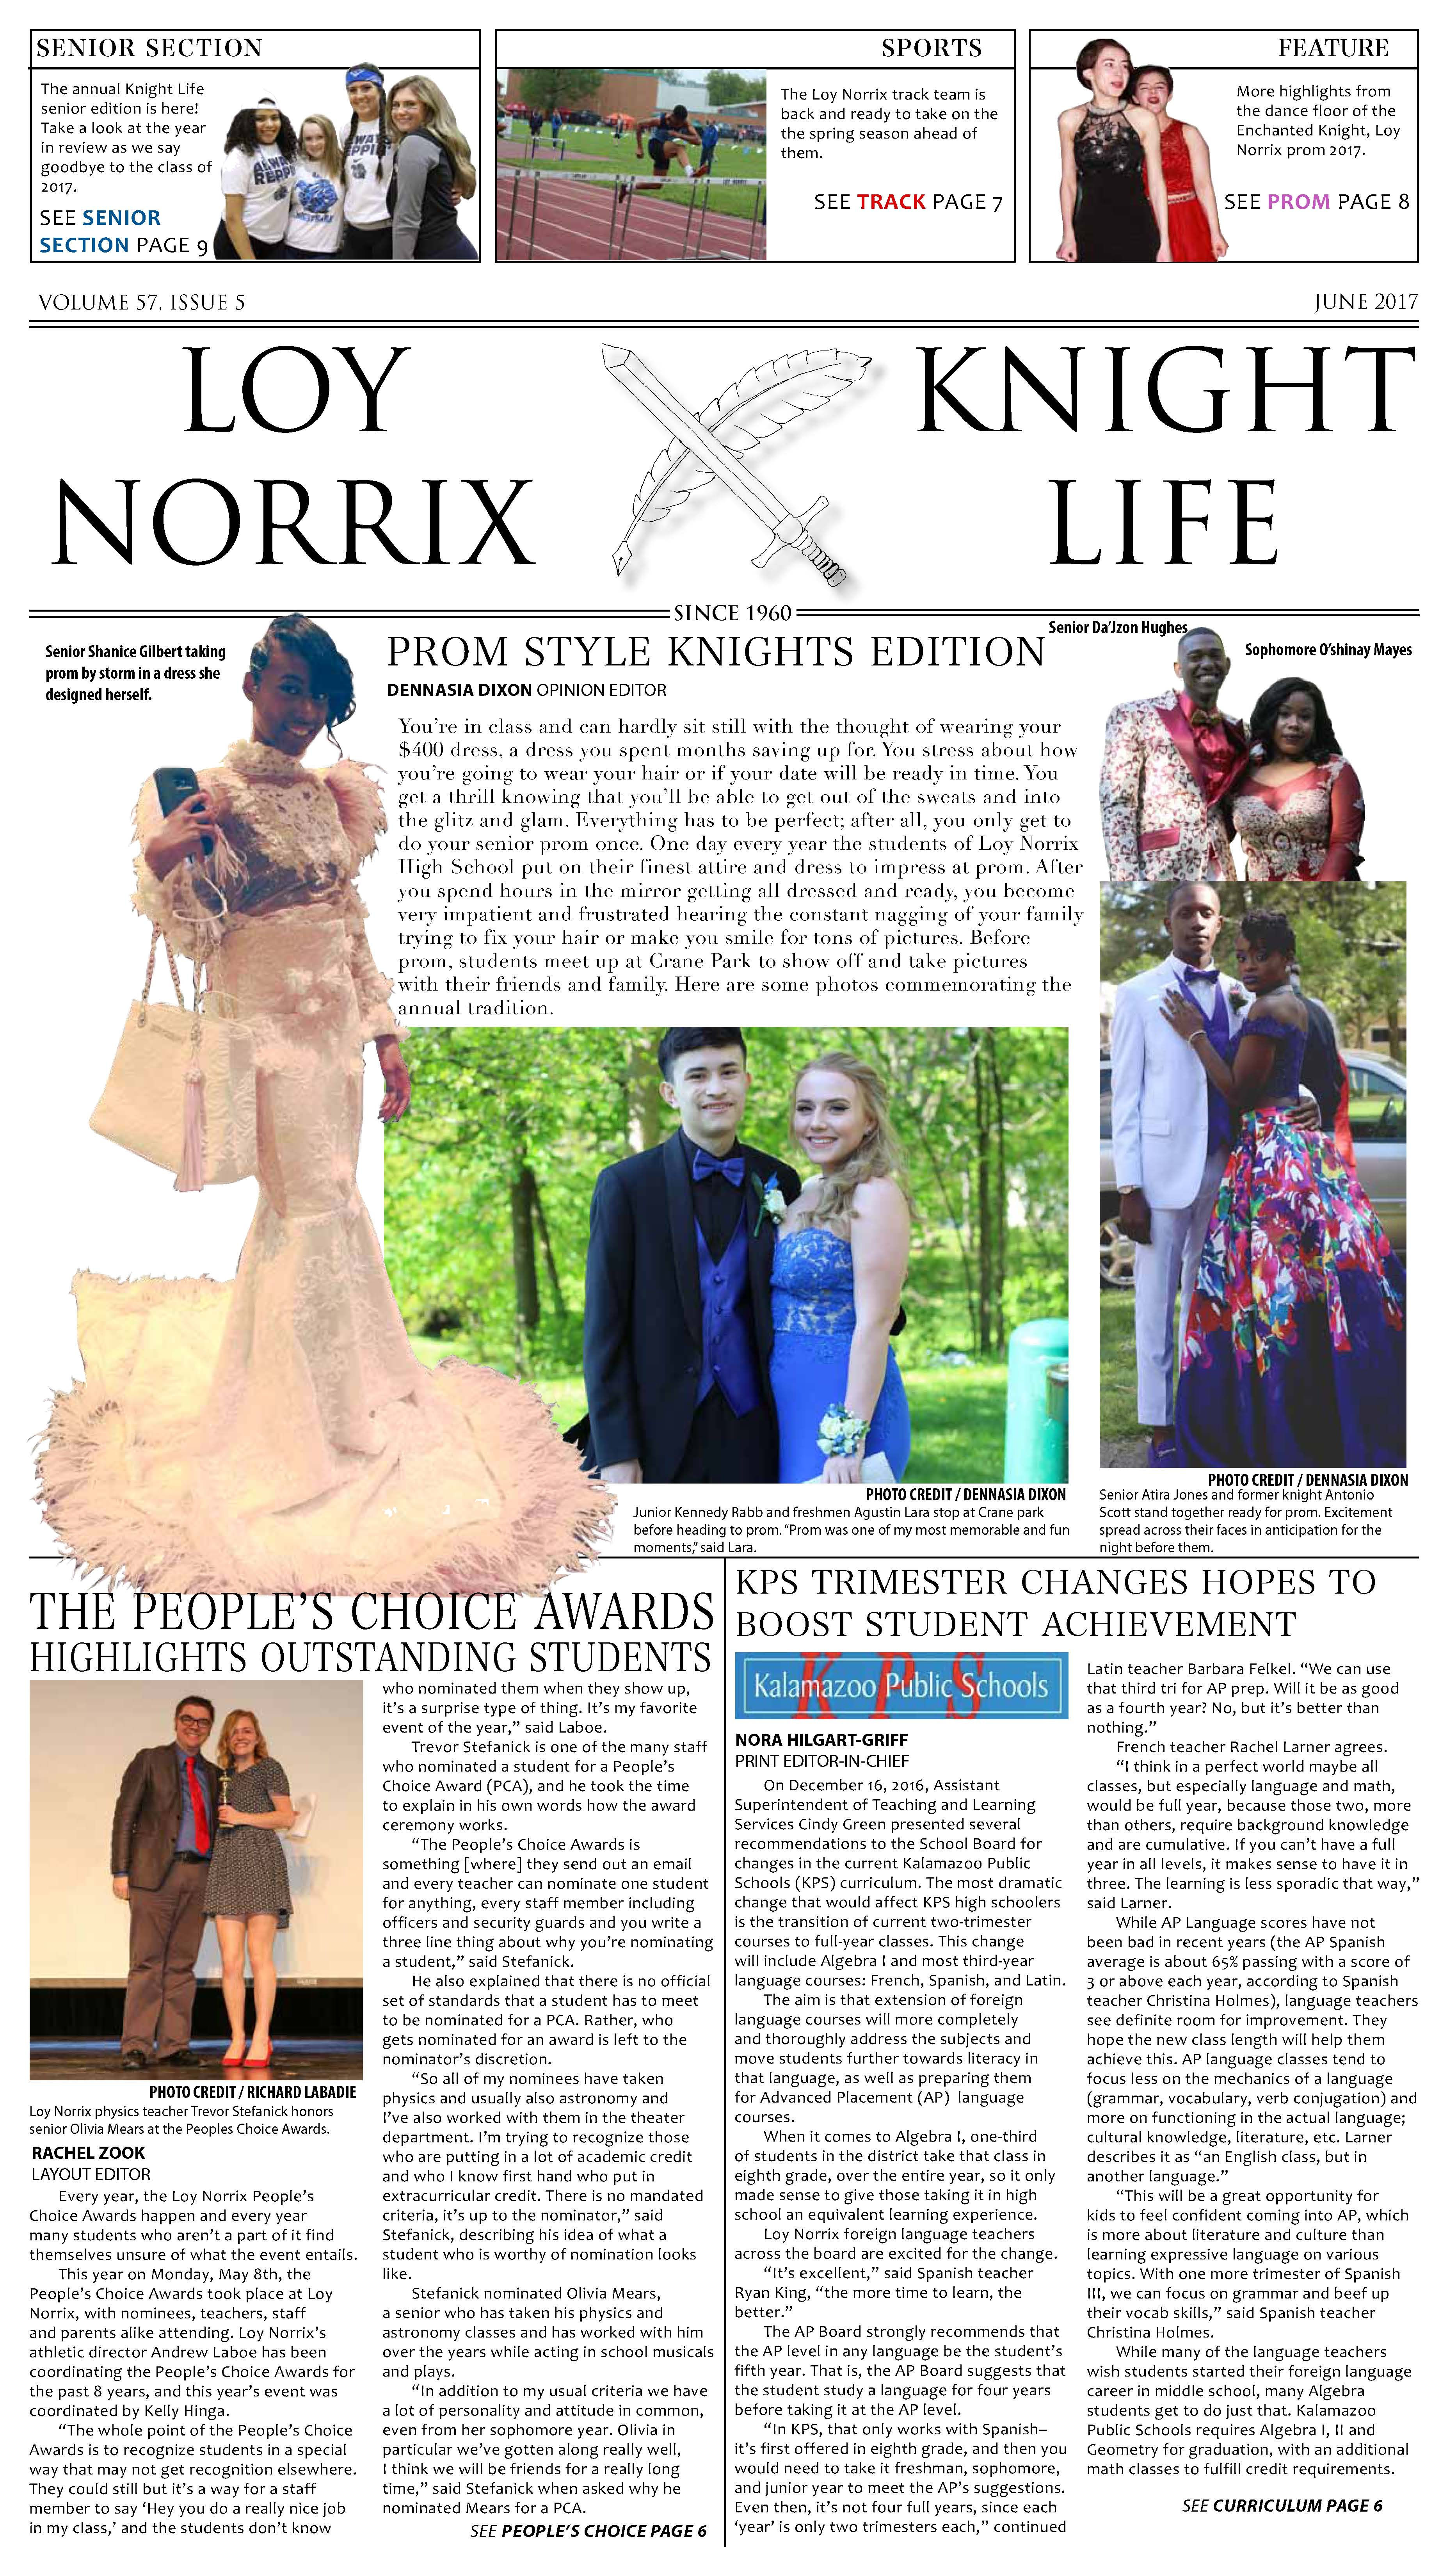 57.5.1 Cover